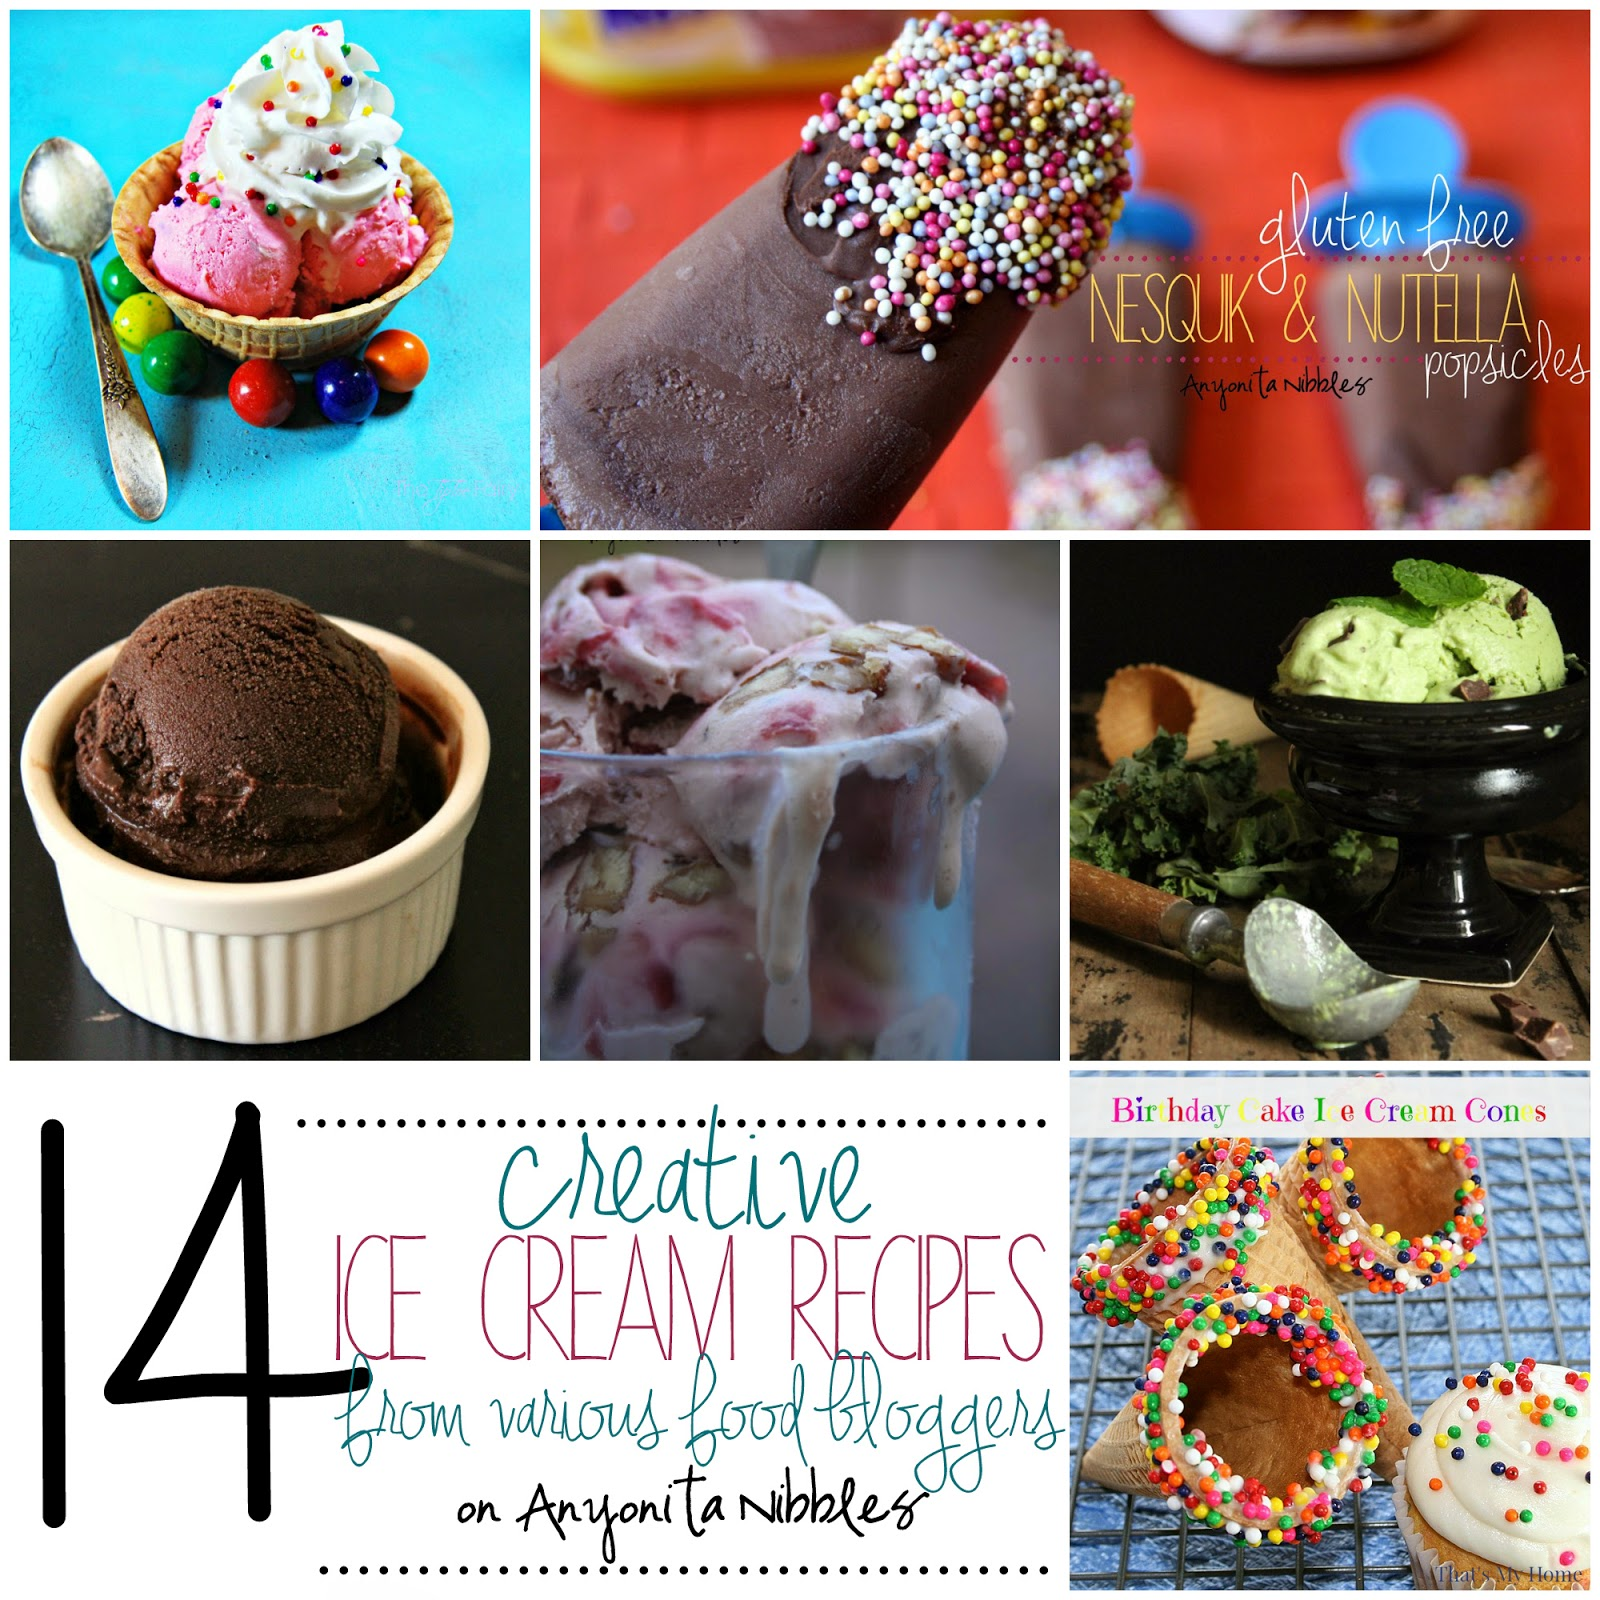 14 Creative Ice Cream Recipes Roundup on Anyonita Nibbles